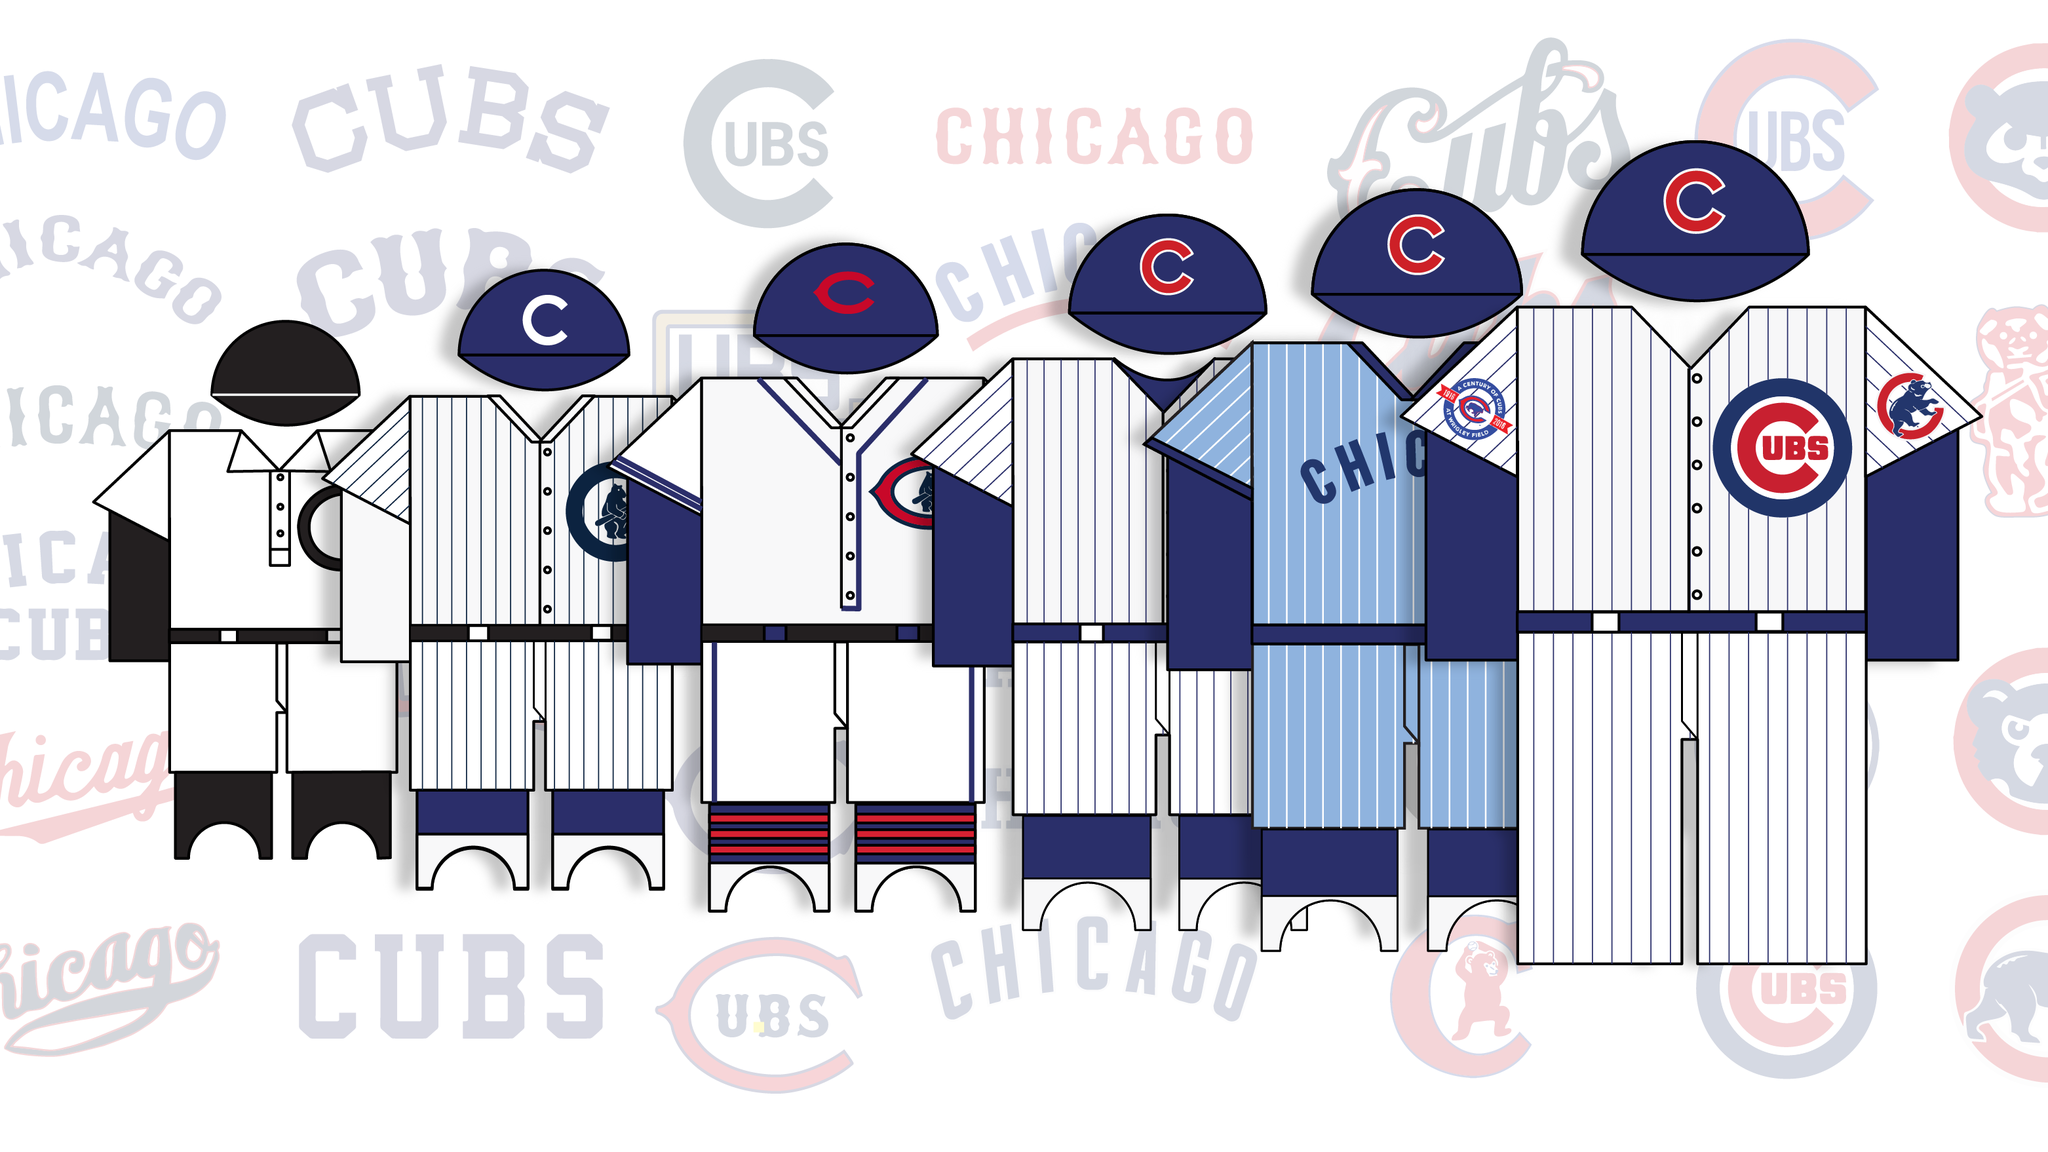 7a16a9bf03d 113 years of Cubs uniforms